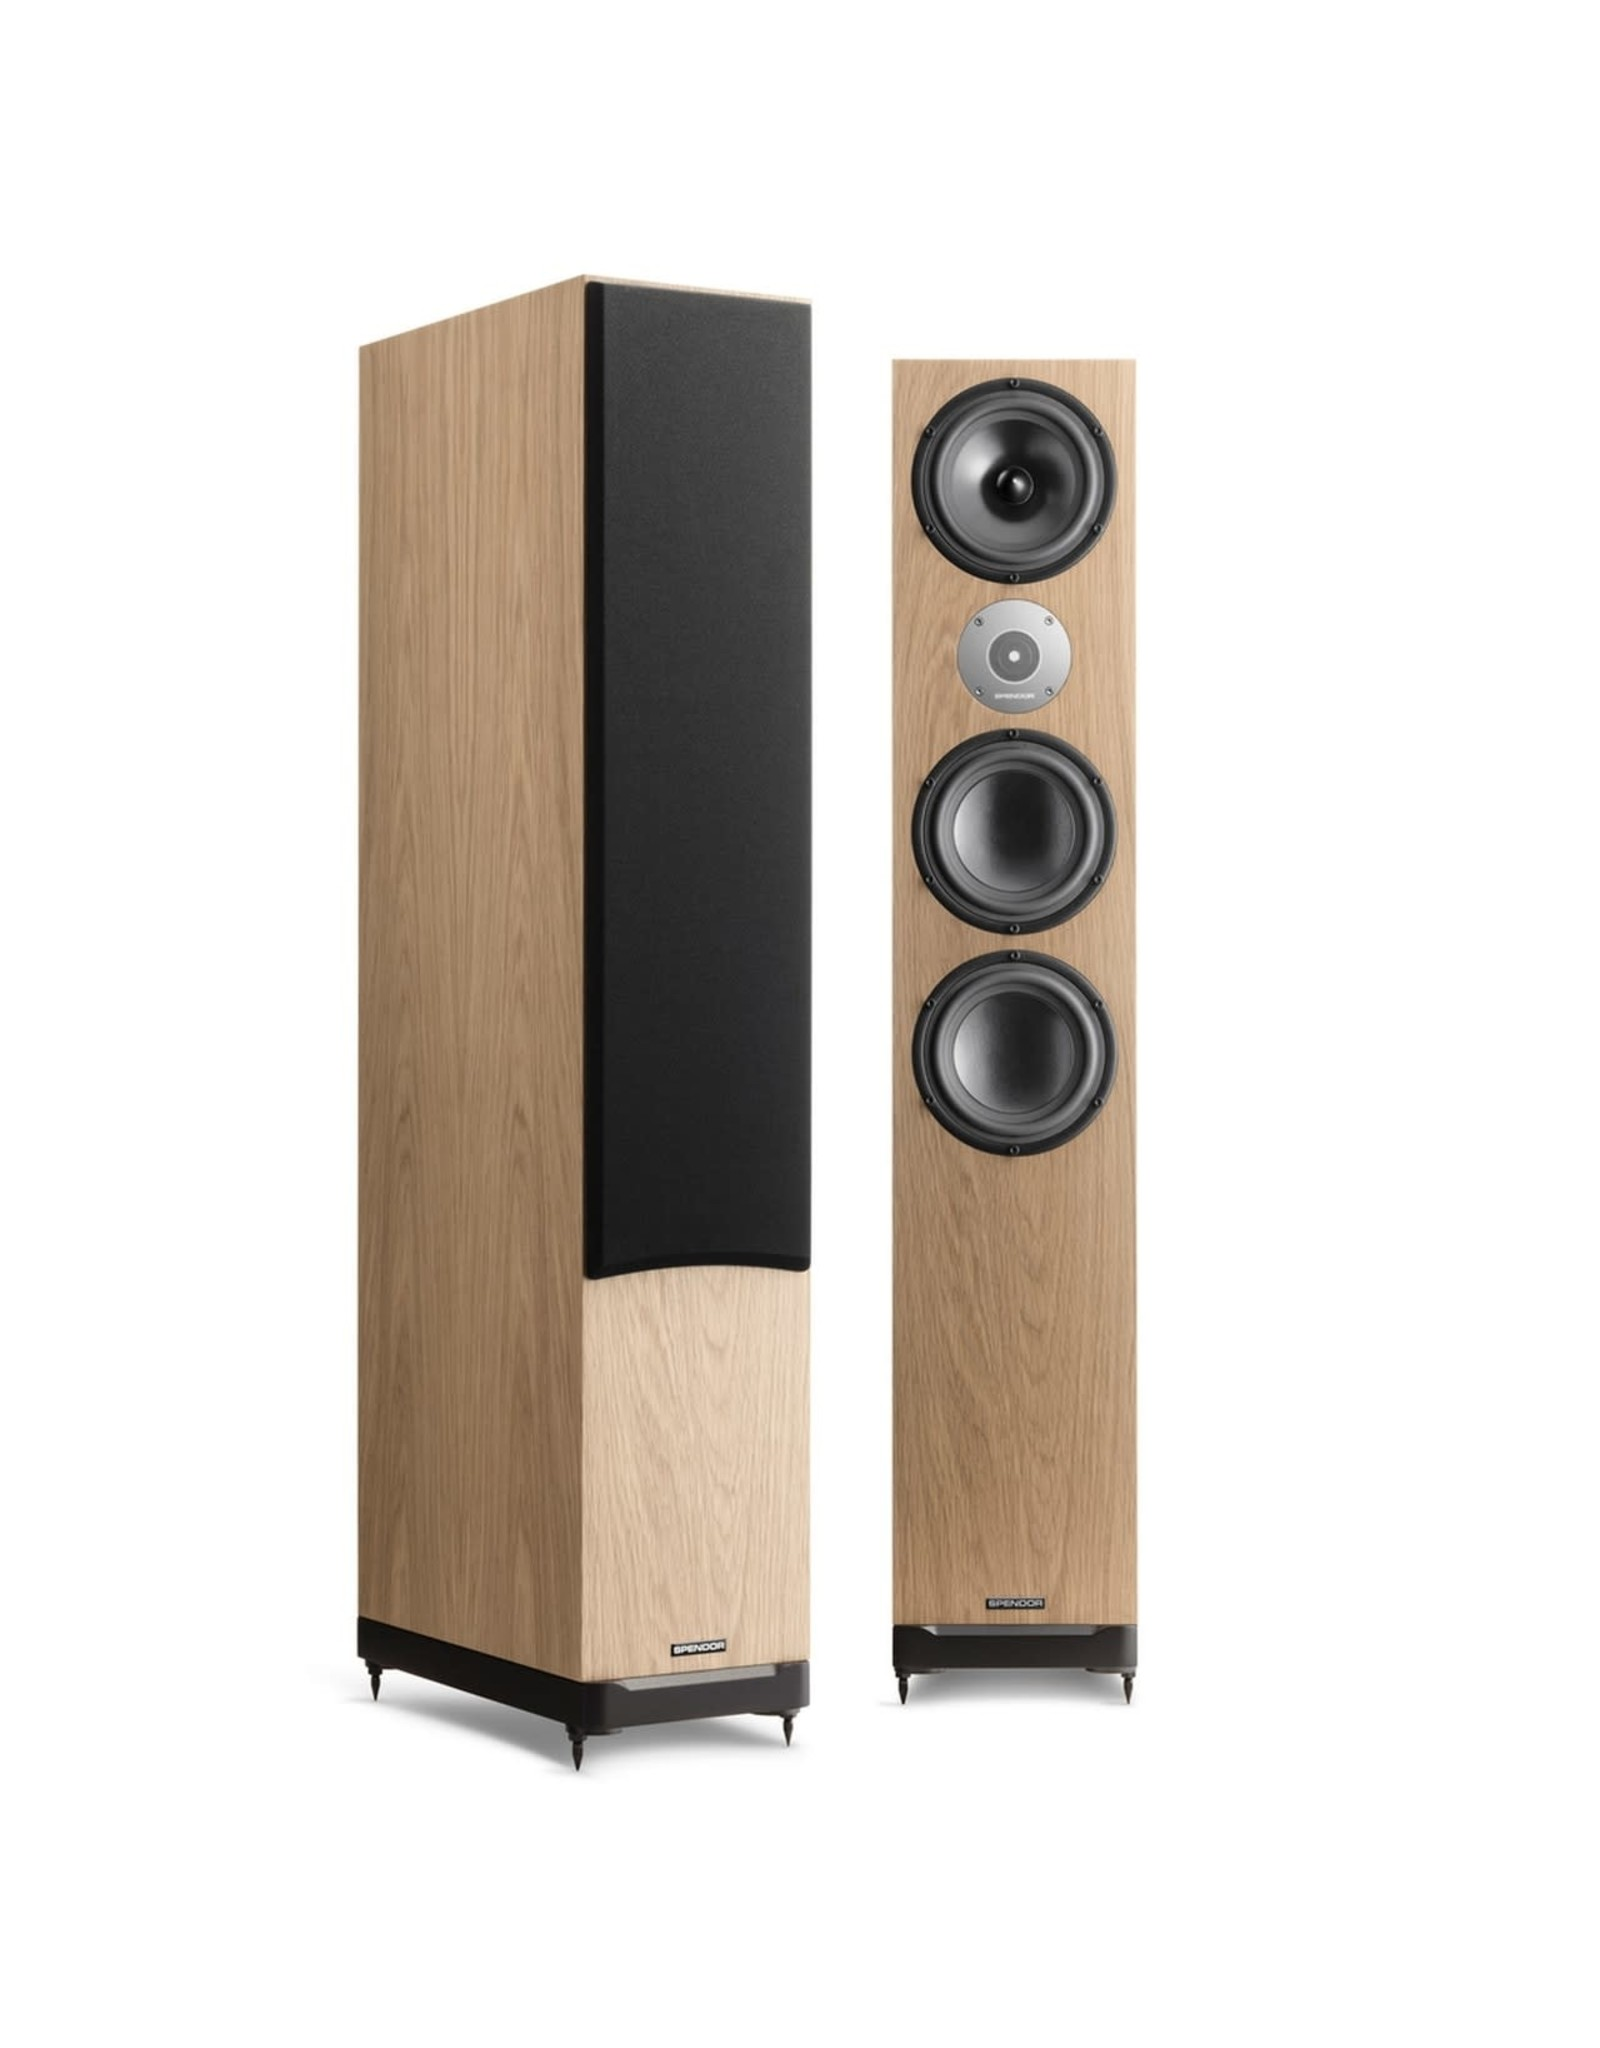 Spendor Spendor D9.2 Floorstanding Speakers